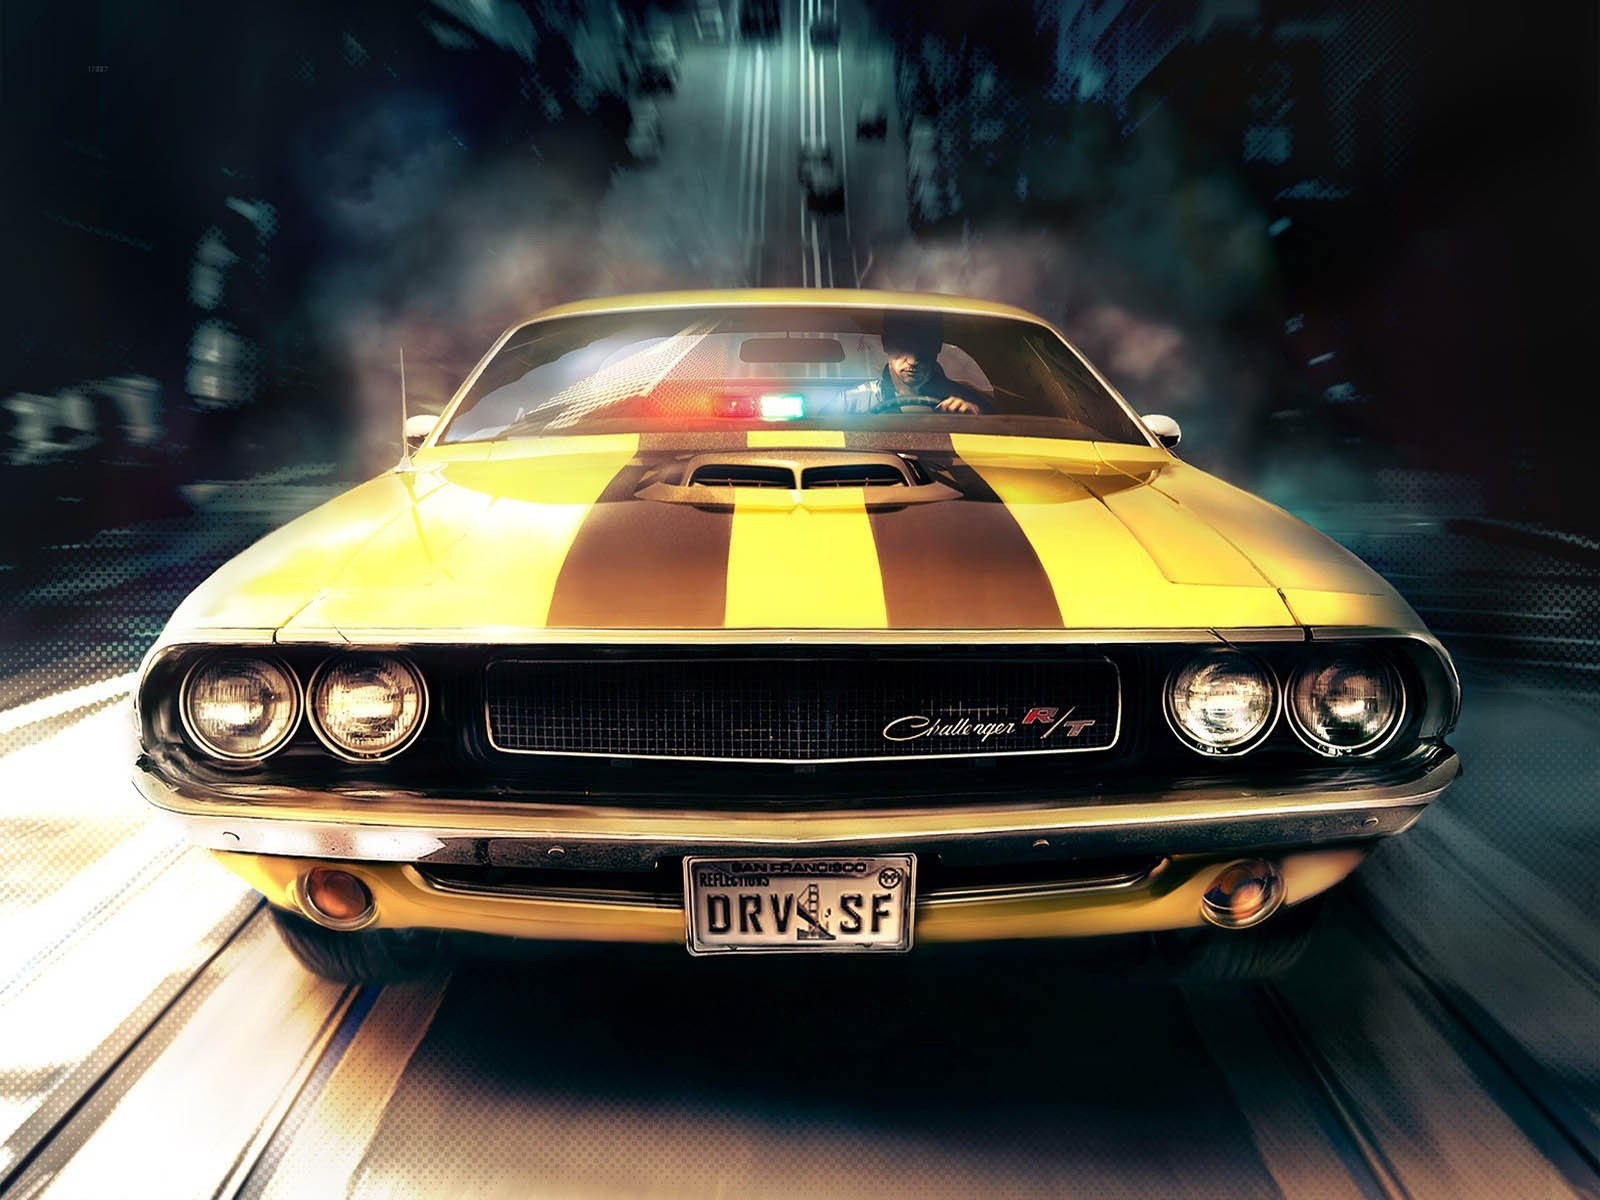 The Challenger!